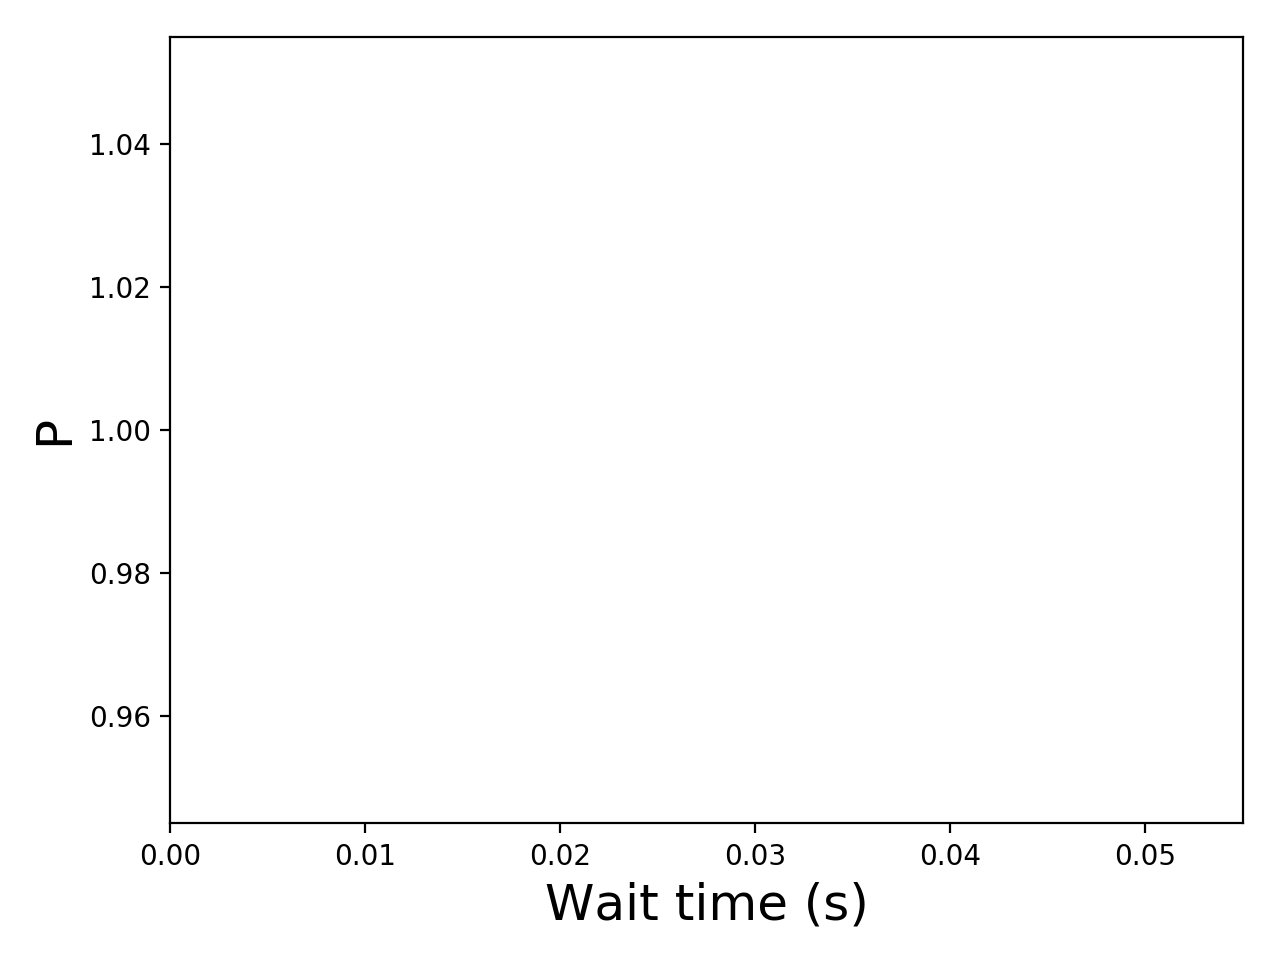 Task wait time CDF graph for the askalon-new_ee52 trace.